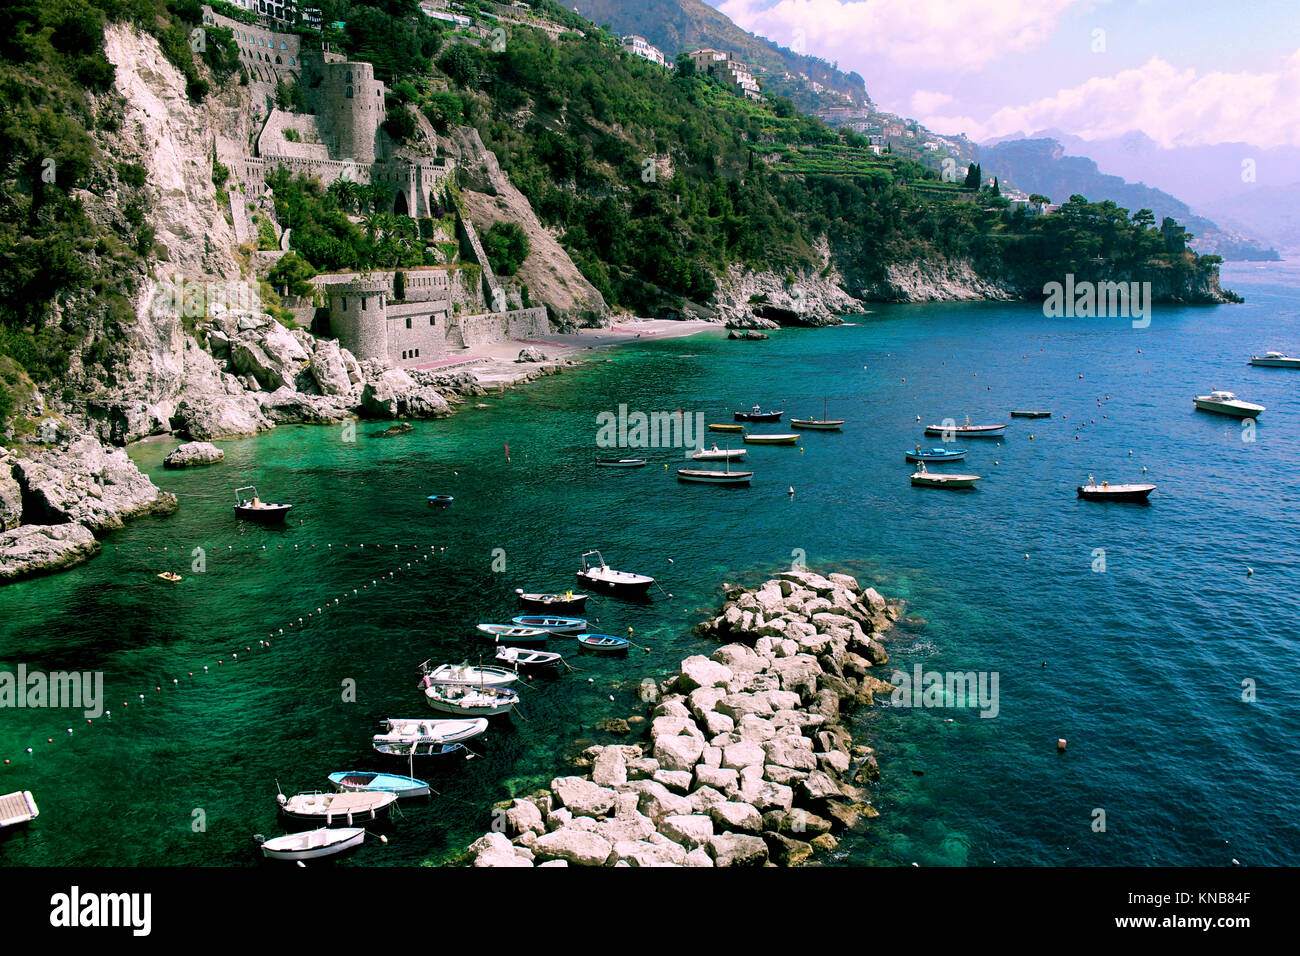 Amazing Italy Landscape, in Conca dei Marine Beach - Amalfi Coast.  It is situated on a hill close to the coast - Stock Image